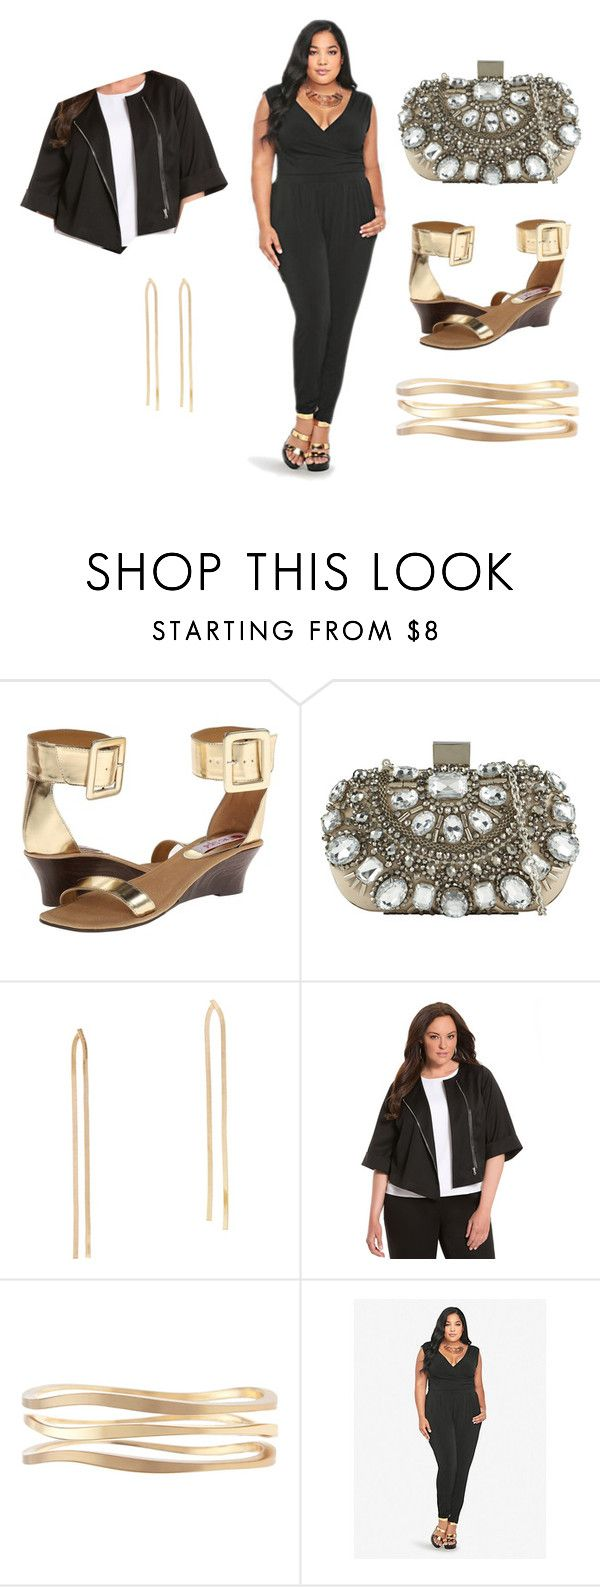 """SDVegas"" by garnerstyle ❤ liked on Polyvore featuring Two Lips, ALDO and Lane Bryant"